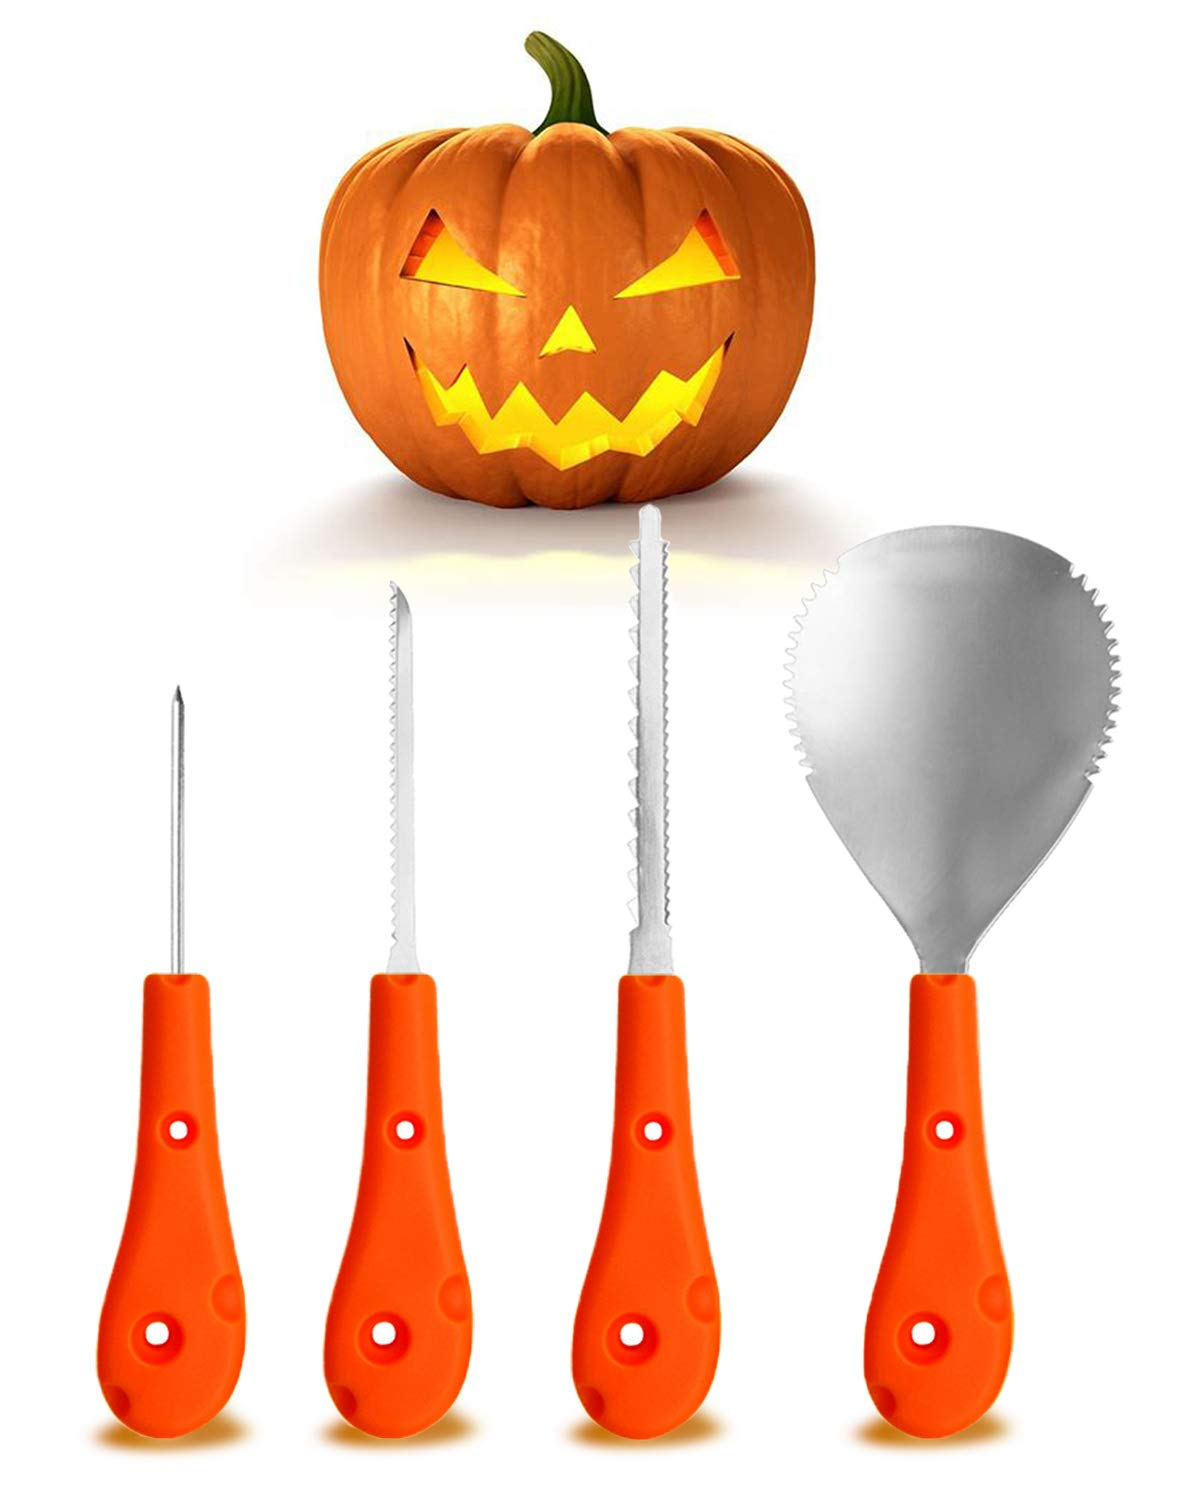 Halloween Pumpkin Carving Kit, Stainless Steel Tool Easily Carve Sculpt Halloween Jack-O-Lanterns